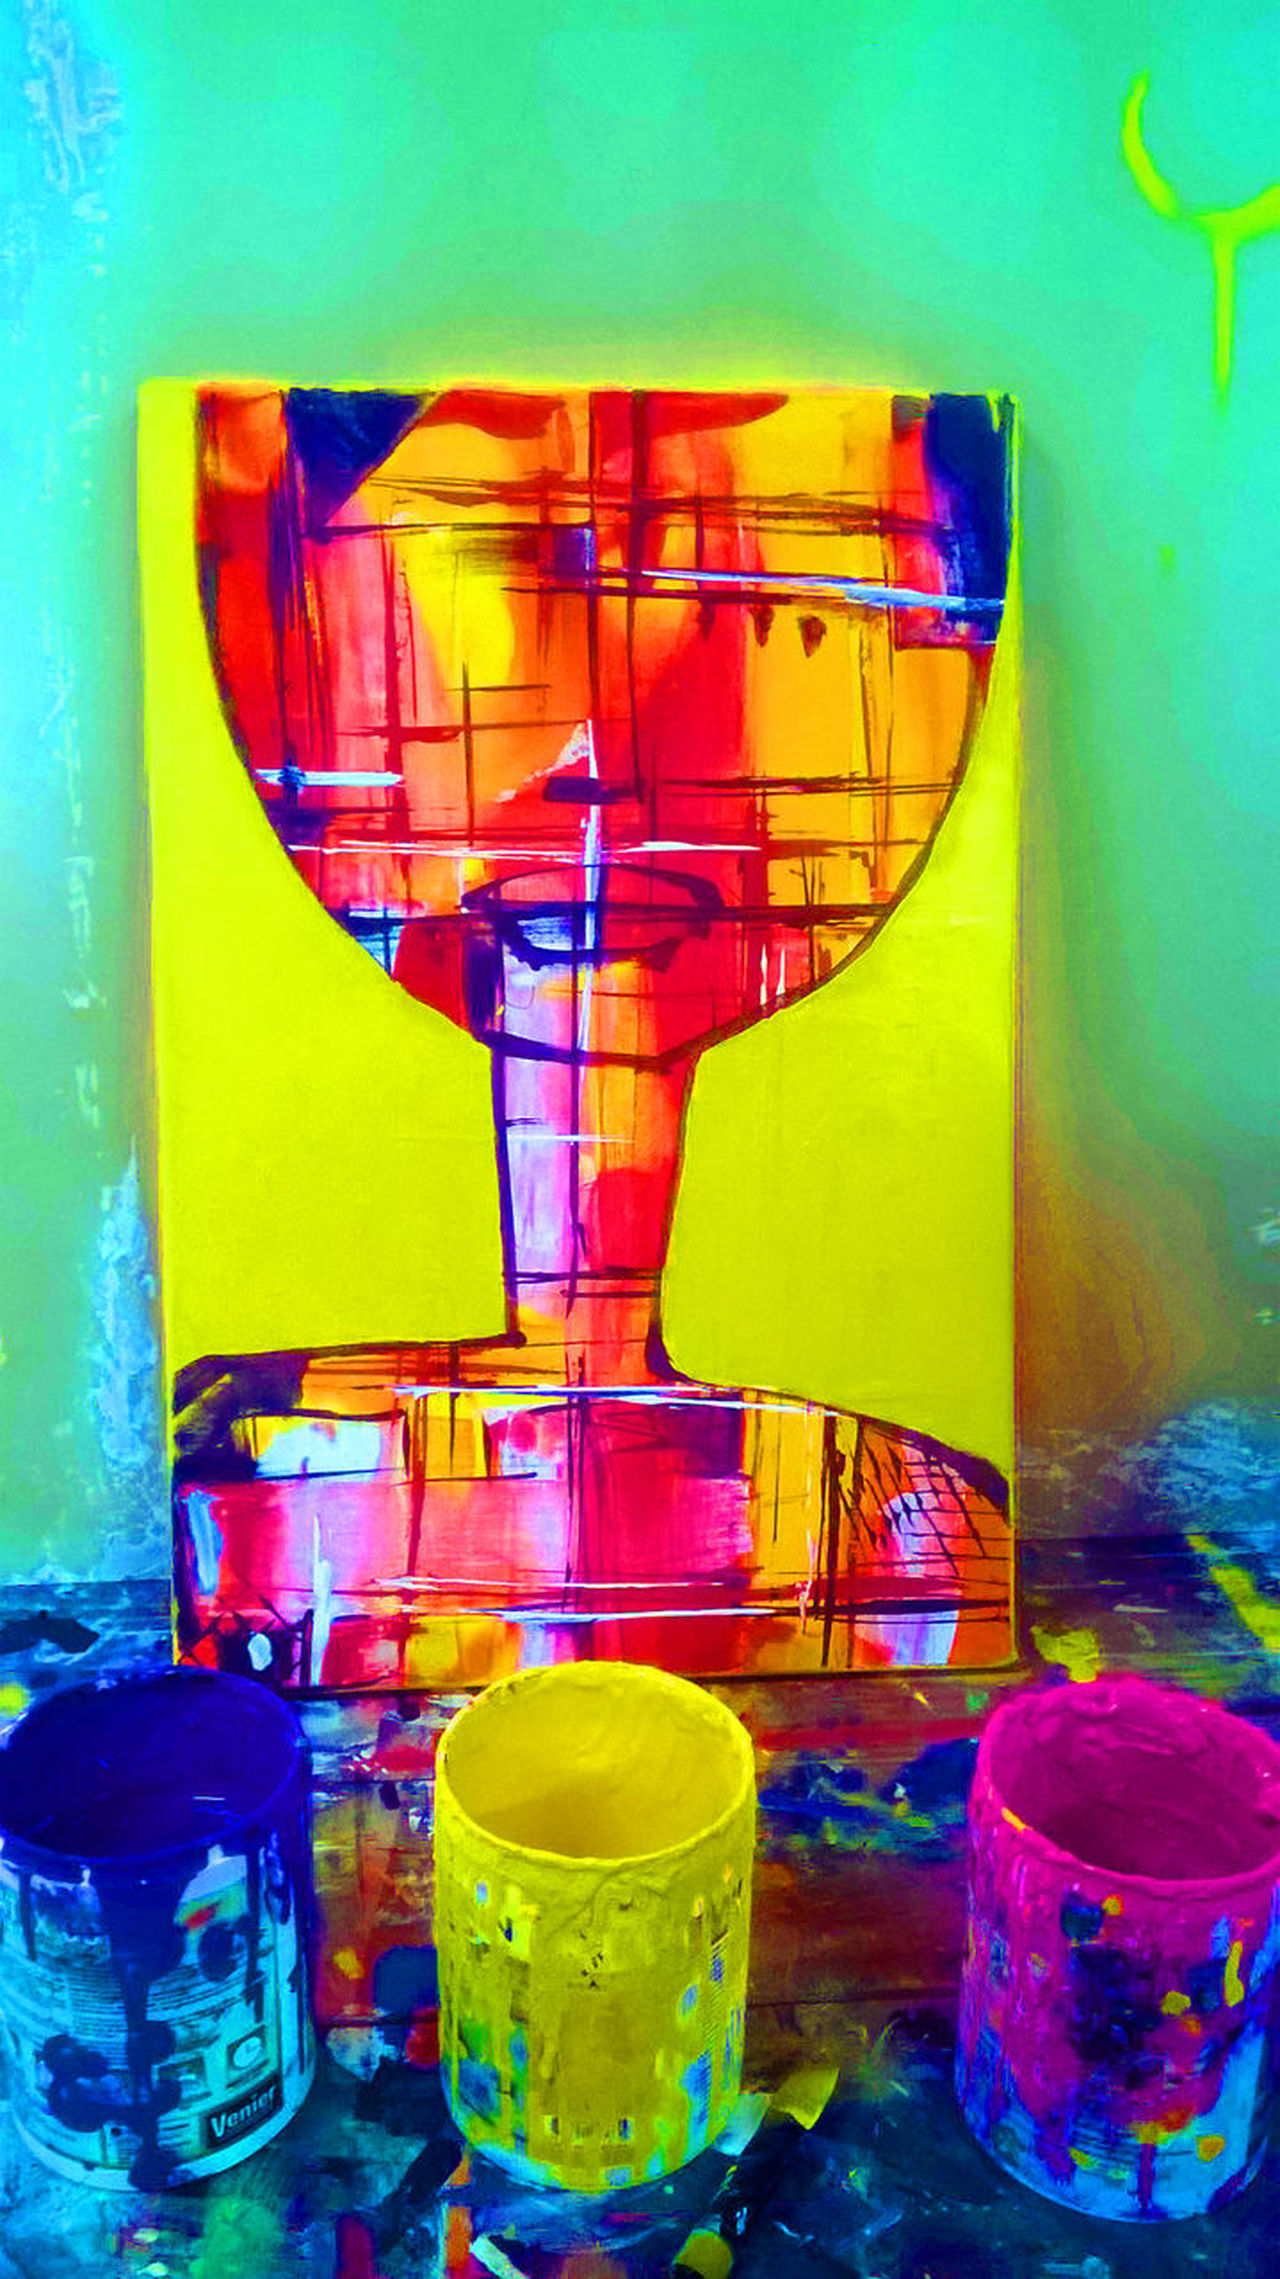 ARTISTA LORENA MAS Art Arte Color Colour Day Indoors  Multi Colored No People Paint Painting Pintura Table Yellow